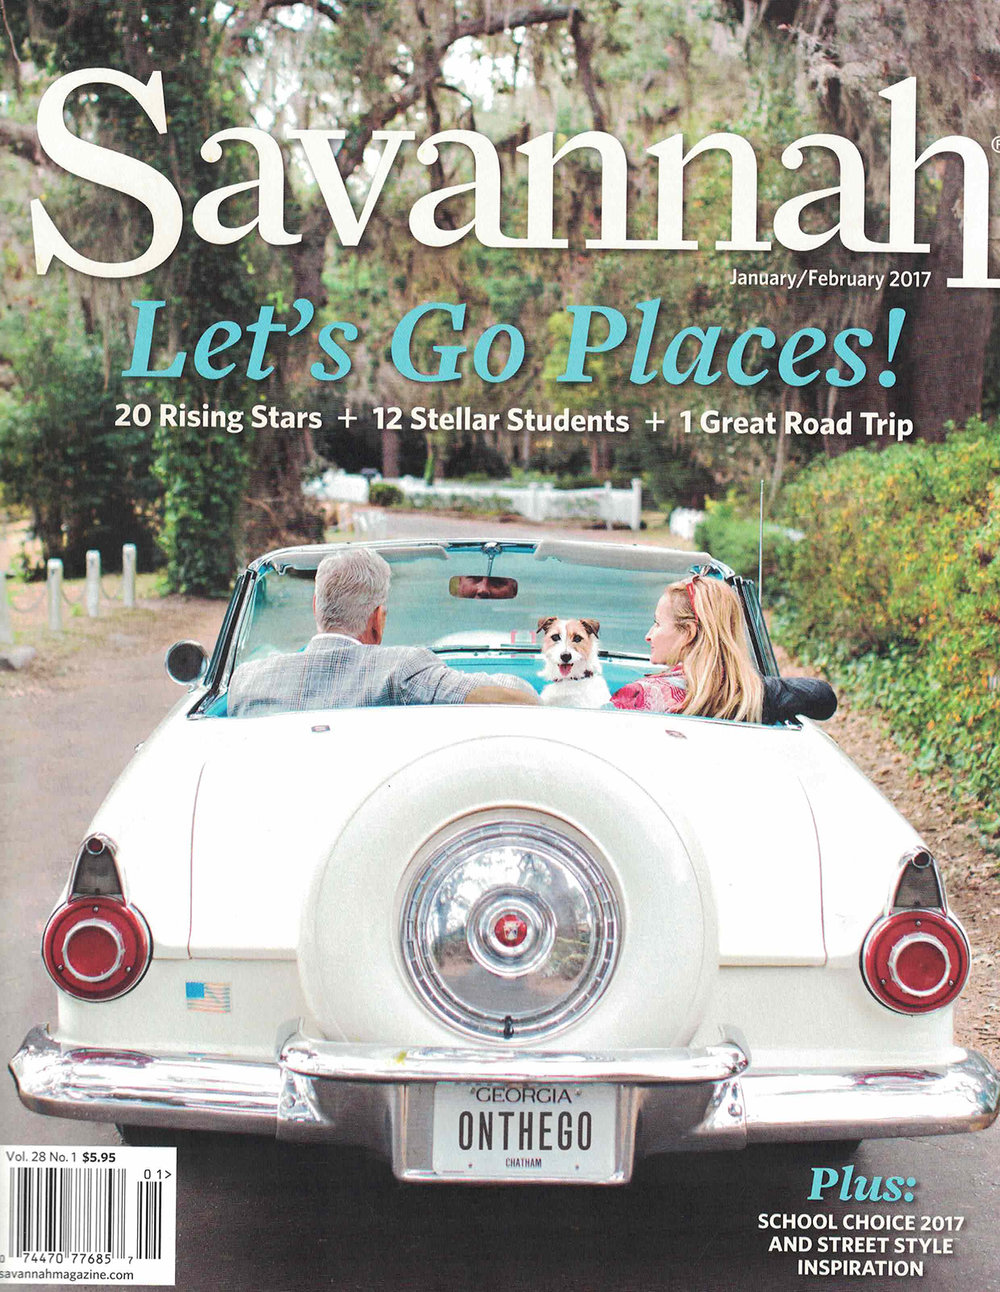 Savannah Magazine January/February 2017